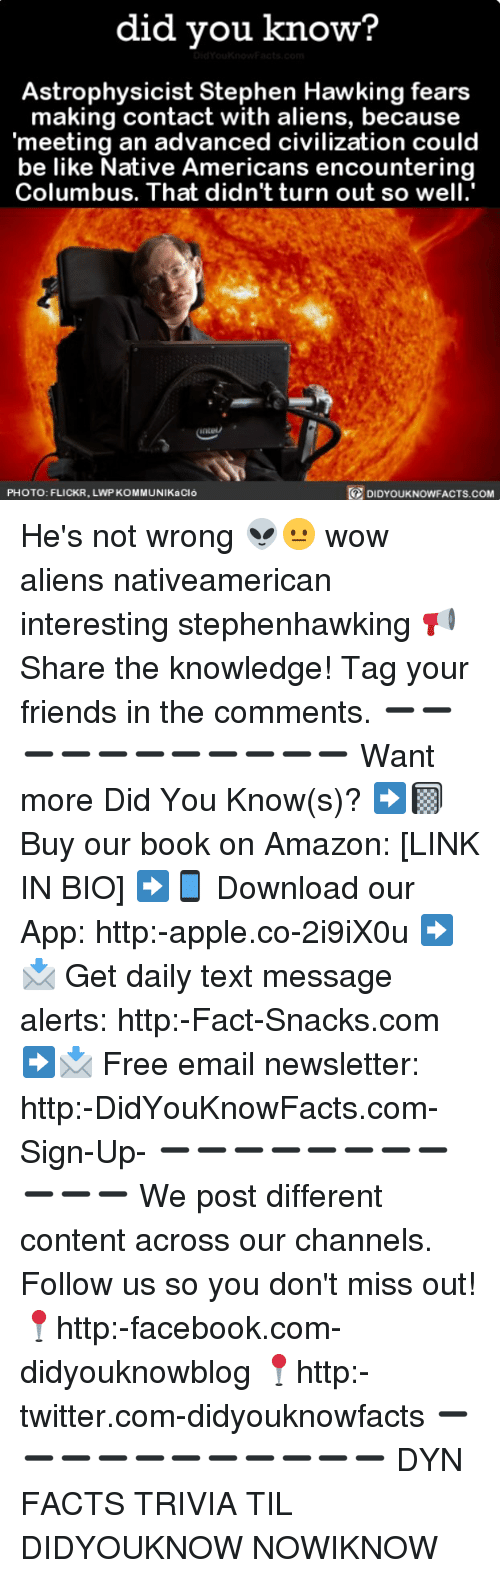 Columbusing: did you know?  Astrophysicist Stephen Hawking fears  making contact with aliens, because  meeting an advanced civilization could  be like Native Americans encountering  Columbus. That didn't turn out so well  PHOTO: FLICKR, LWP KOMMUNIKaCló  DIDYOUKNOWFACTS.COM He's not wrong 👽😐 wow aliens nativeamerican interesting stephenhawking 📢 Share the knowledge! Tag your friends in the comments. ➖➖➖➖➖➖➖➖➖➖➖ Want more Did You Know(s)? ➡📓 Buy our book on Amazon: [LINK IN BIO] ➡📱 Download our App: http:-apple.co-2i9iX0u ➡📩 Get daily text message alerts: http:-Fact-Snacks.com ➡📩 Free email newsletter: http:-DidYouKnowFacts.com-Sign-Up- ➖➖➖➖➖➖➖➖➖➖➖ We post different content across our channels. Follow us so you don't miss out! 📍http:-facebook.com-didyouknowblog 📍http:-twitter.com-didyouknowfacts ➖➖➖➖➖➖➖➖➖➖➖ DYN FACTS TRIVIA TIL DIDYOUKNOW NOWIKNOW